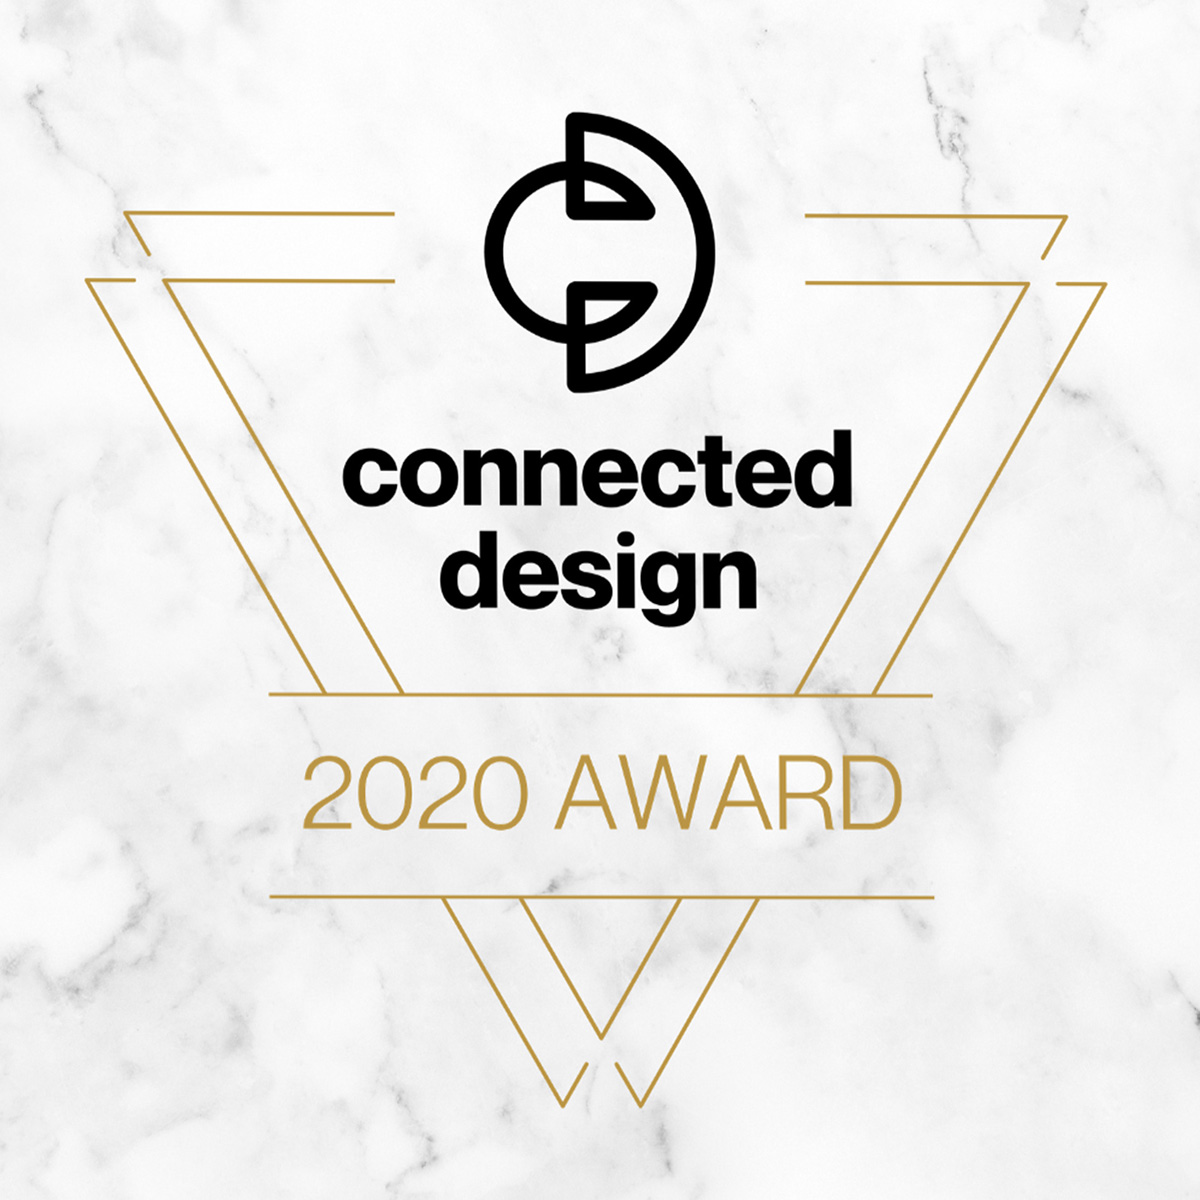 Connected Design Award